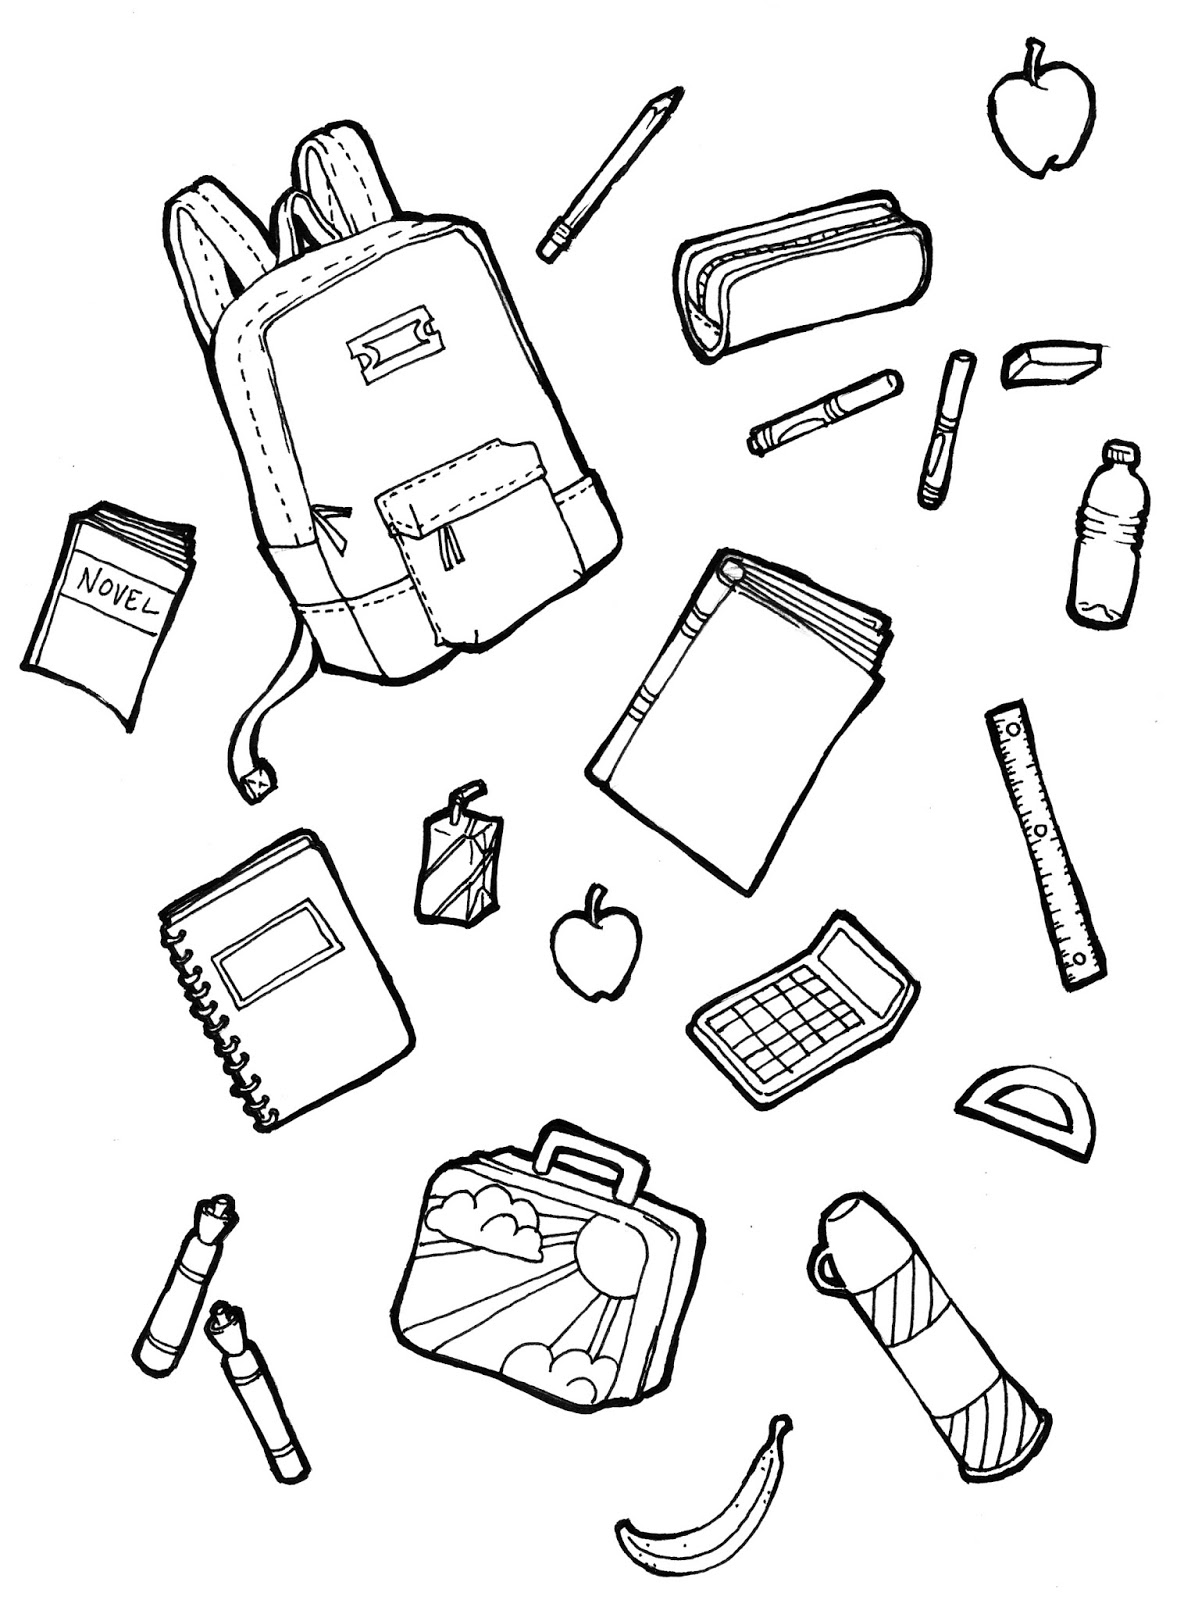 school stuff coloring pages - photo#4